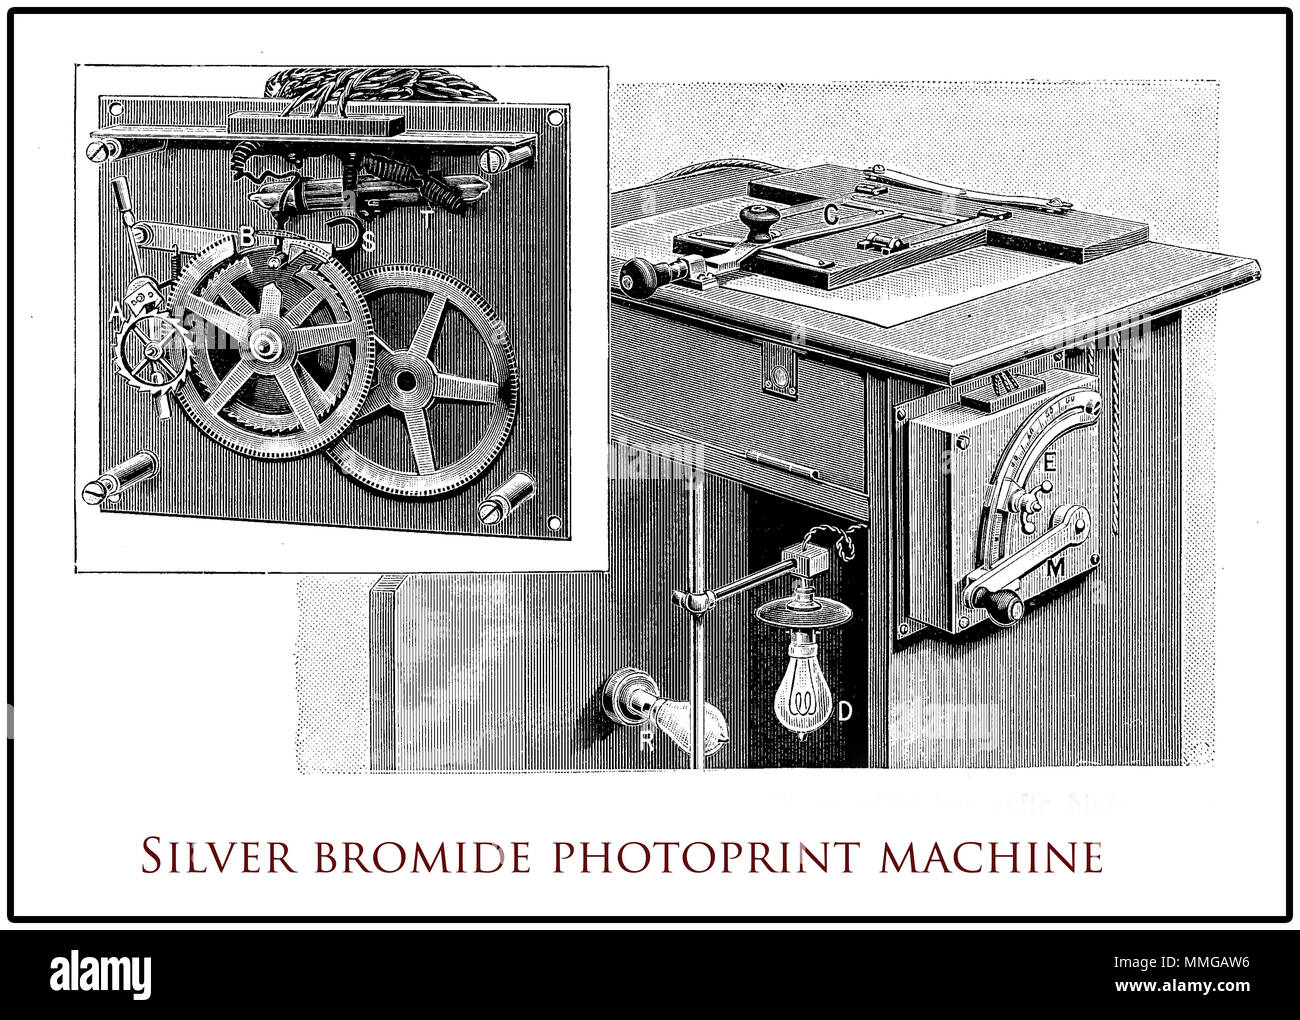 Silver bromide photoprint machine, XIX century engraving - Stock Image